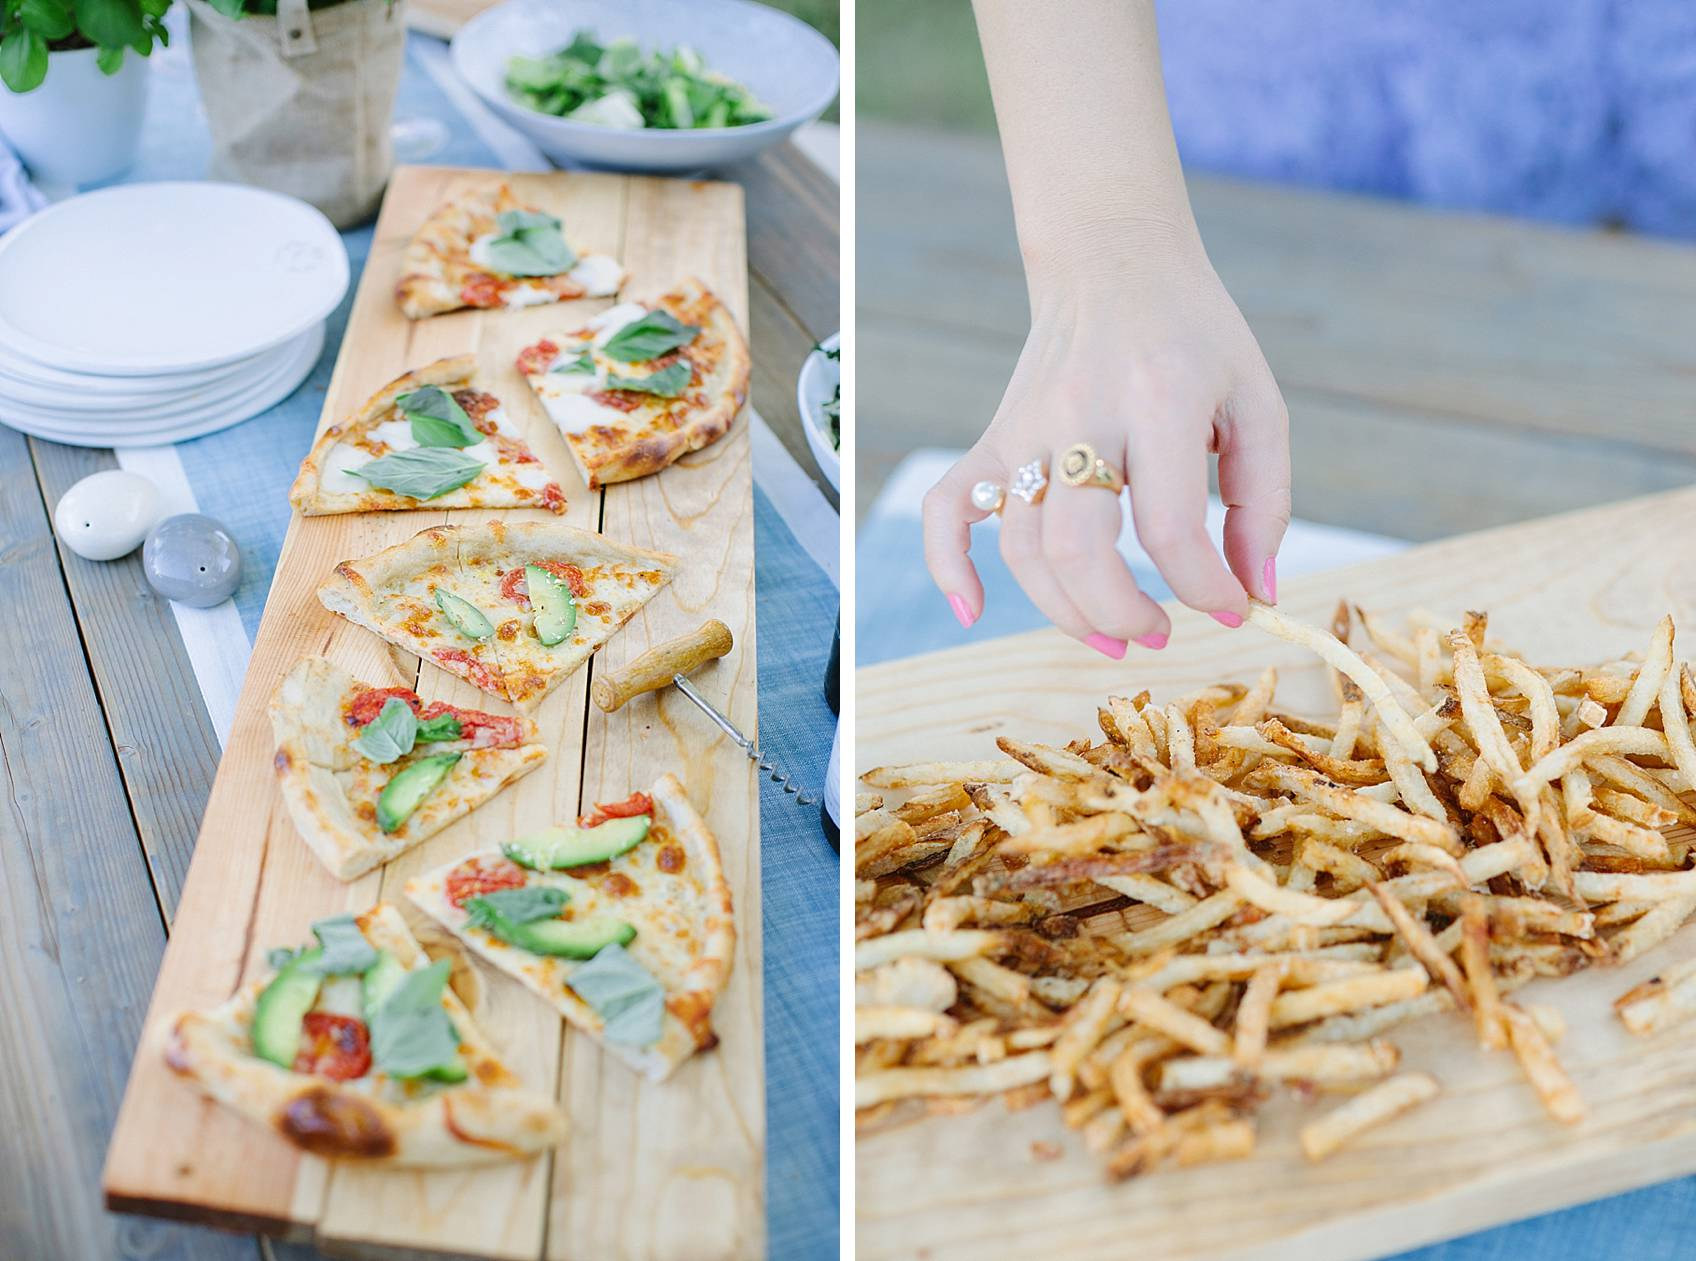 wood board DIY with pizza and French fries